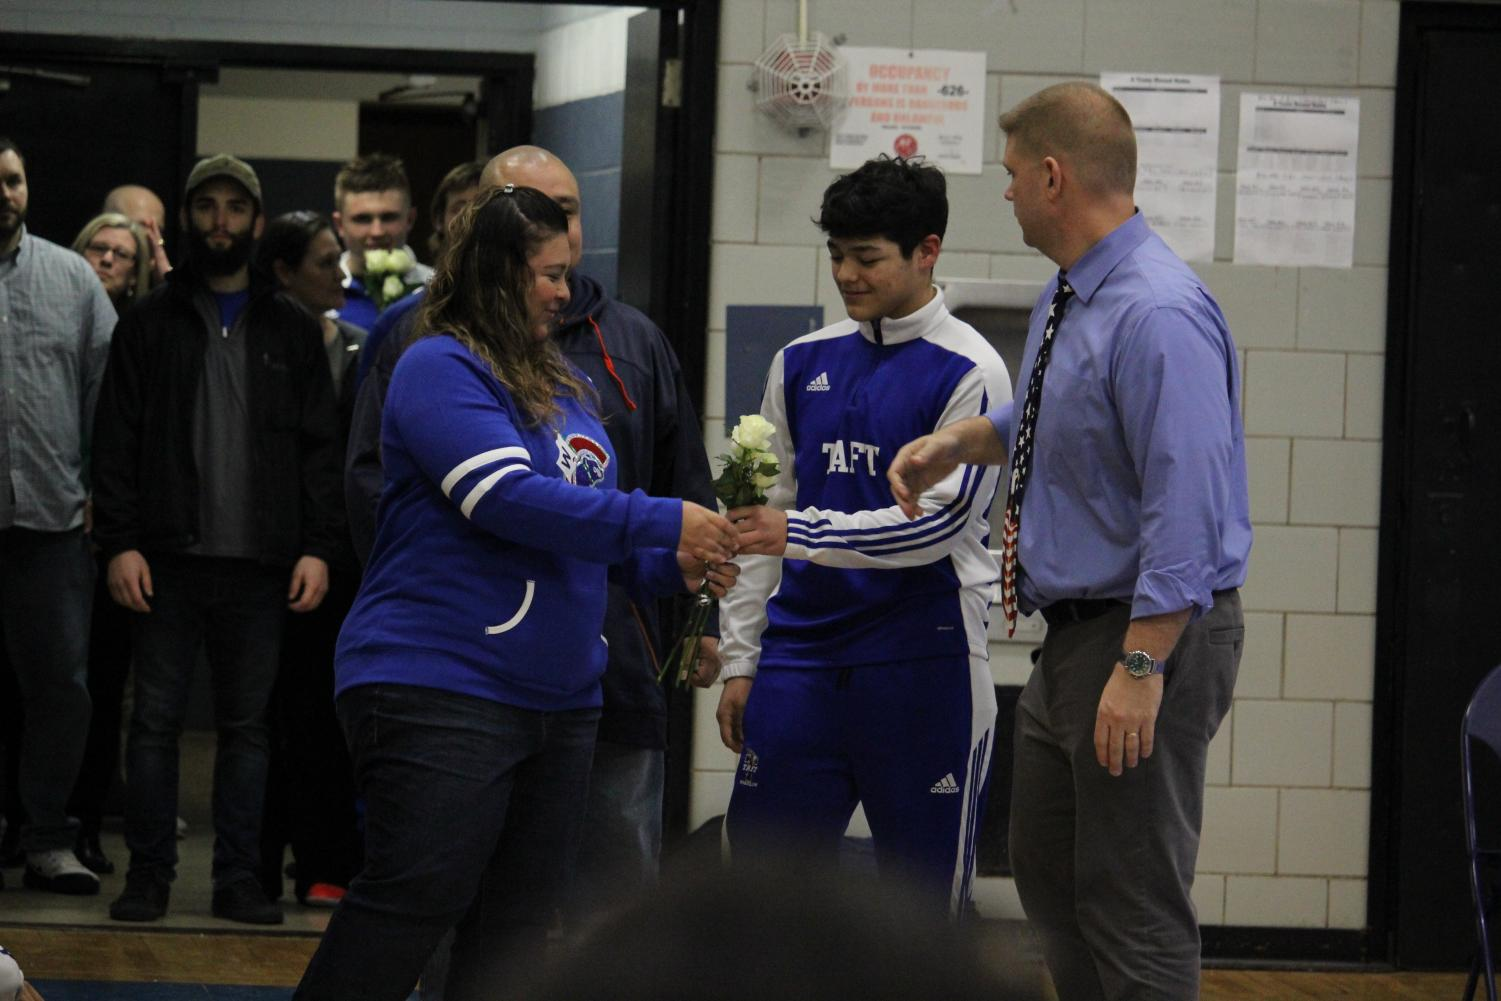 Senior Noe Arroyo handing his mother the roses he received while being congratulated by Coach Brad Engel